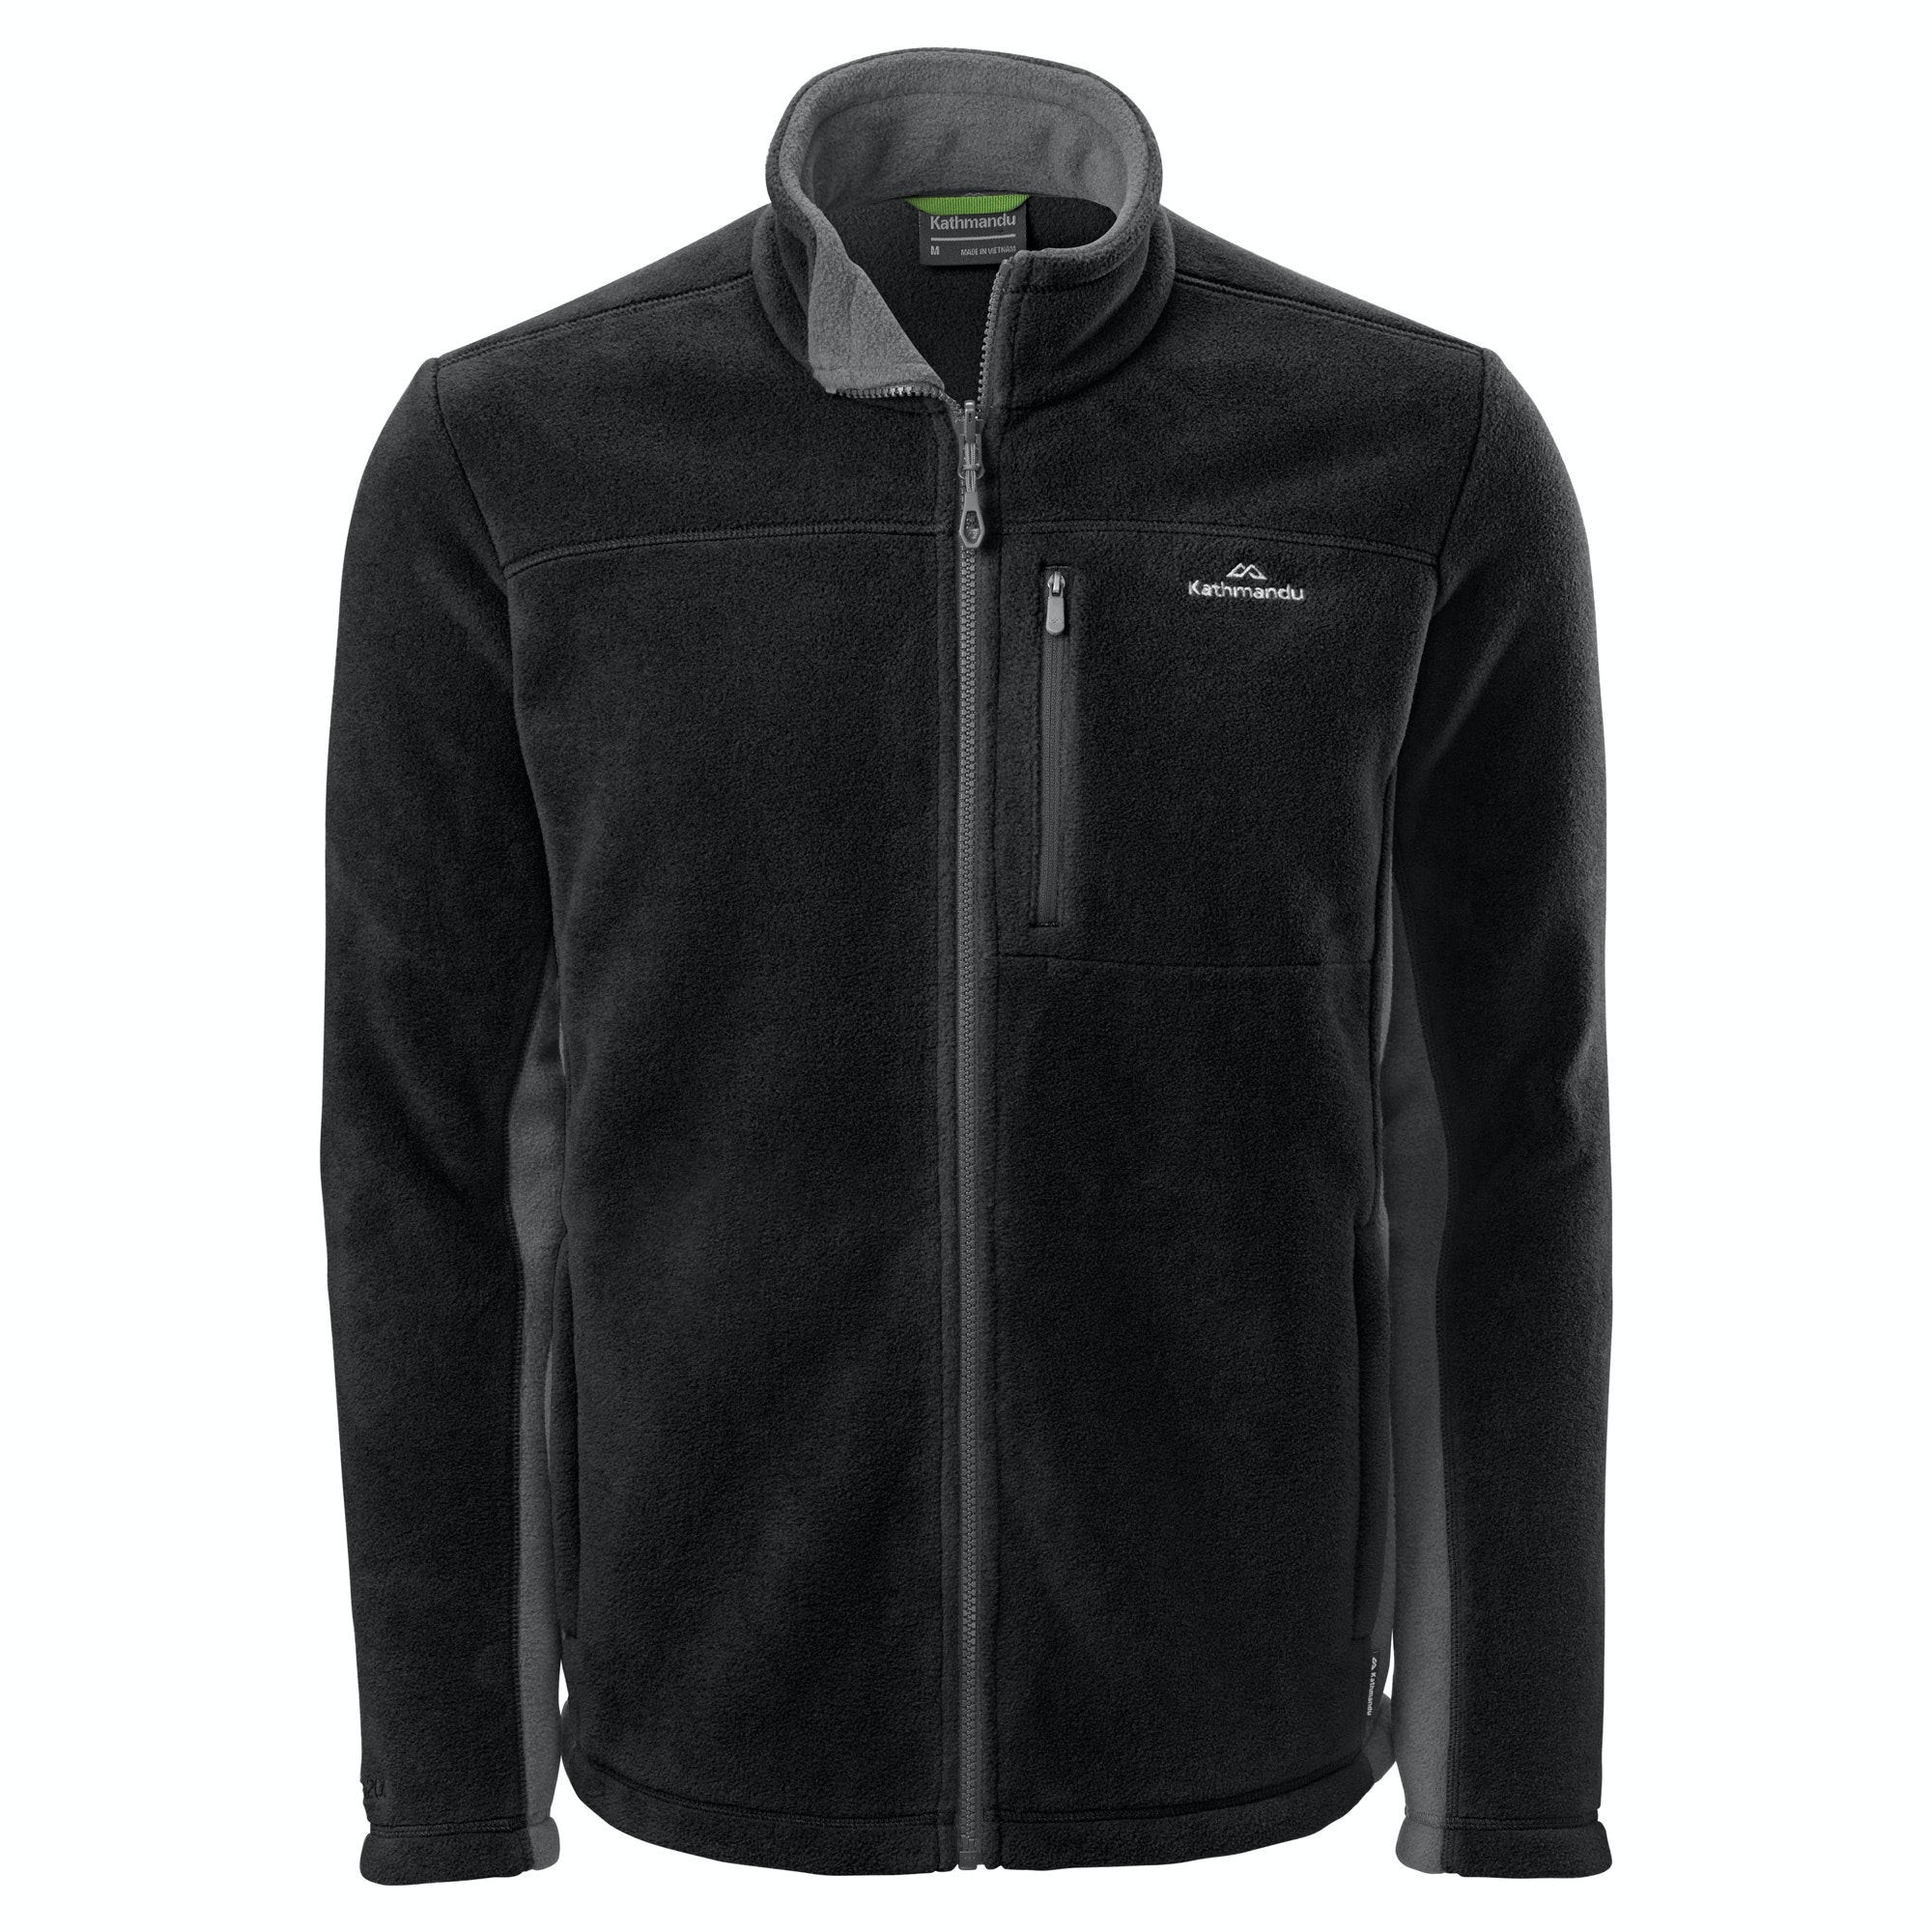 Kathmandu Trailhead 200 Mens Full Zip Warm High Neck Outdoor ...